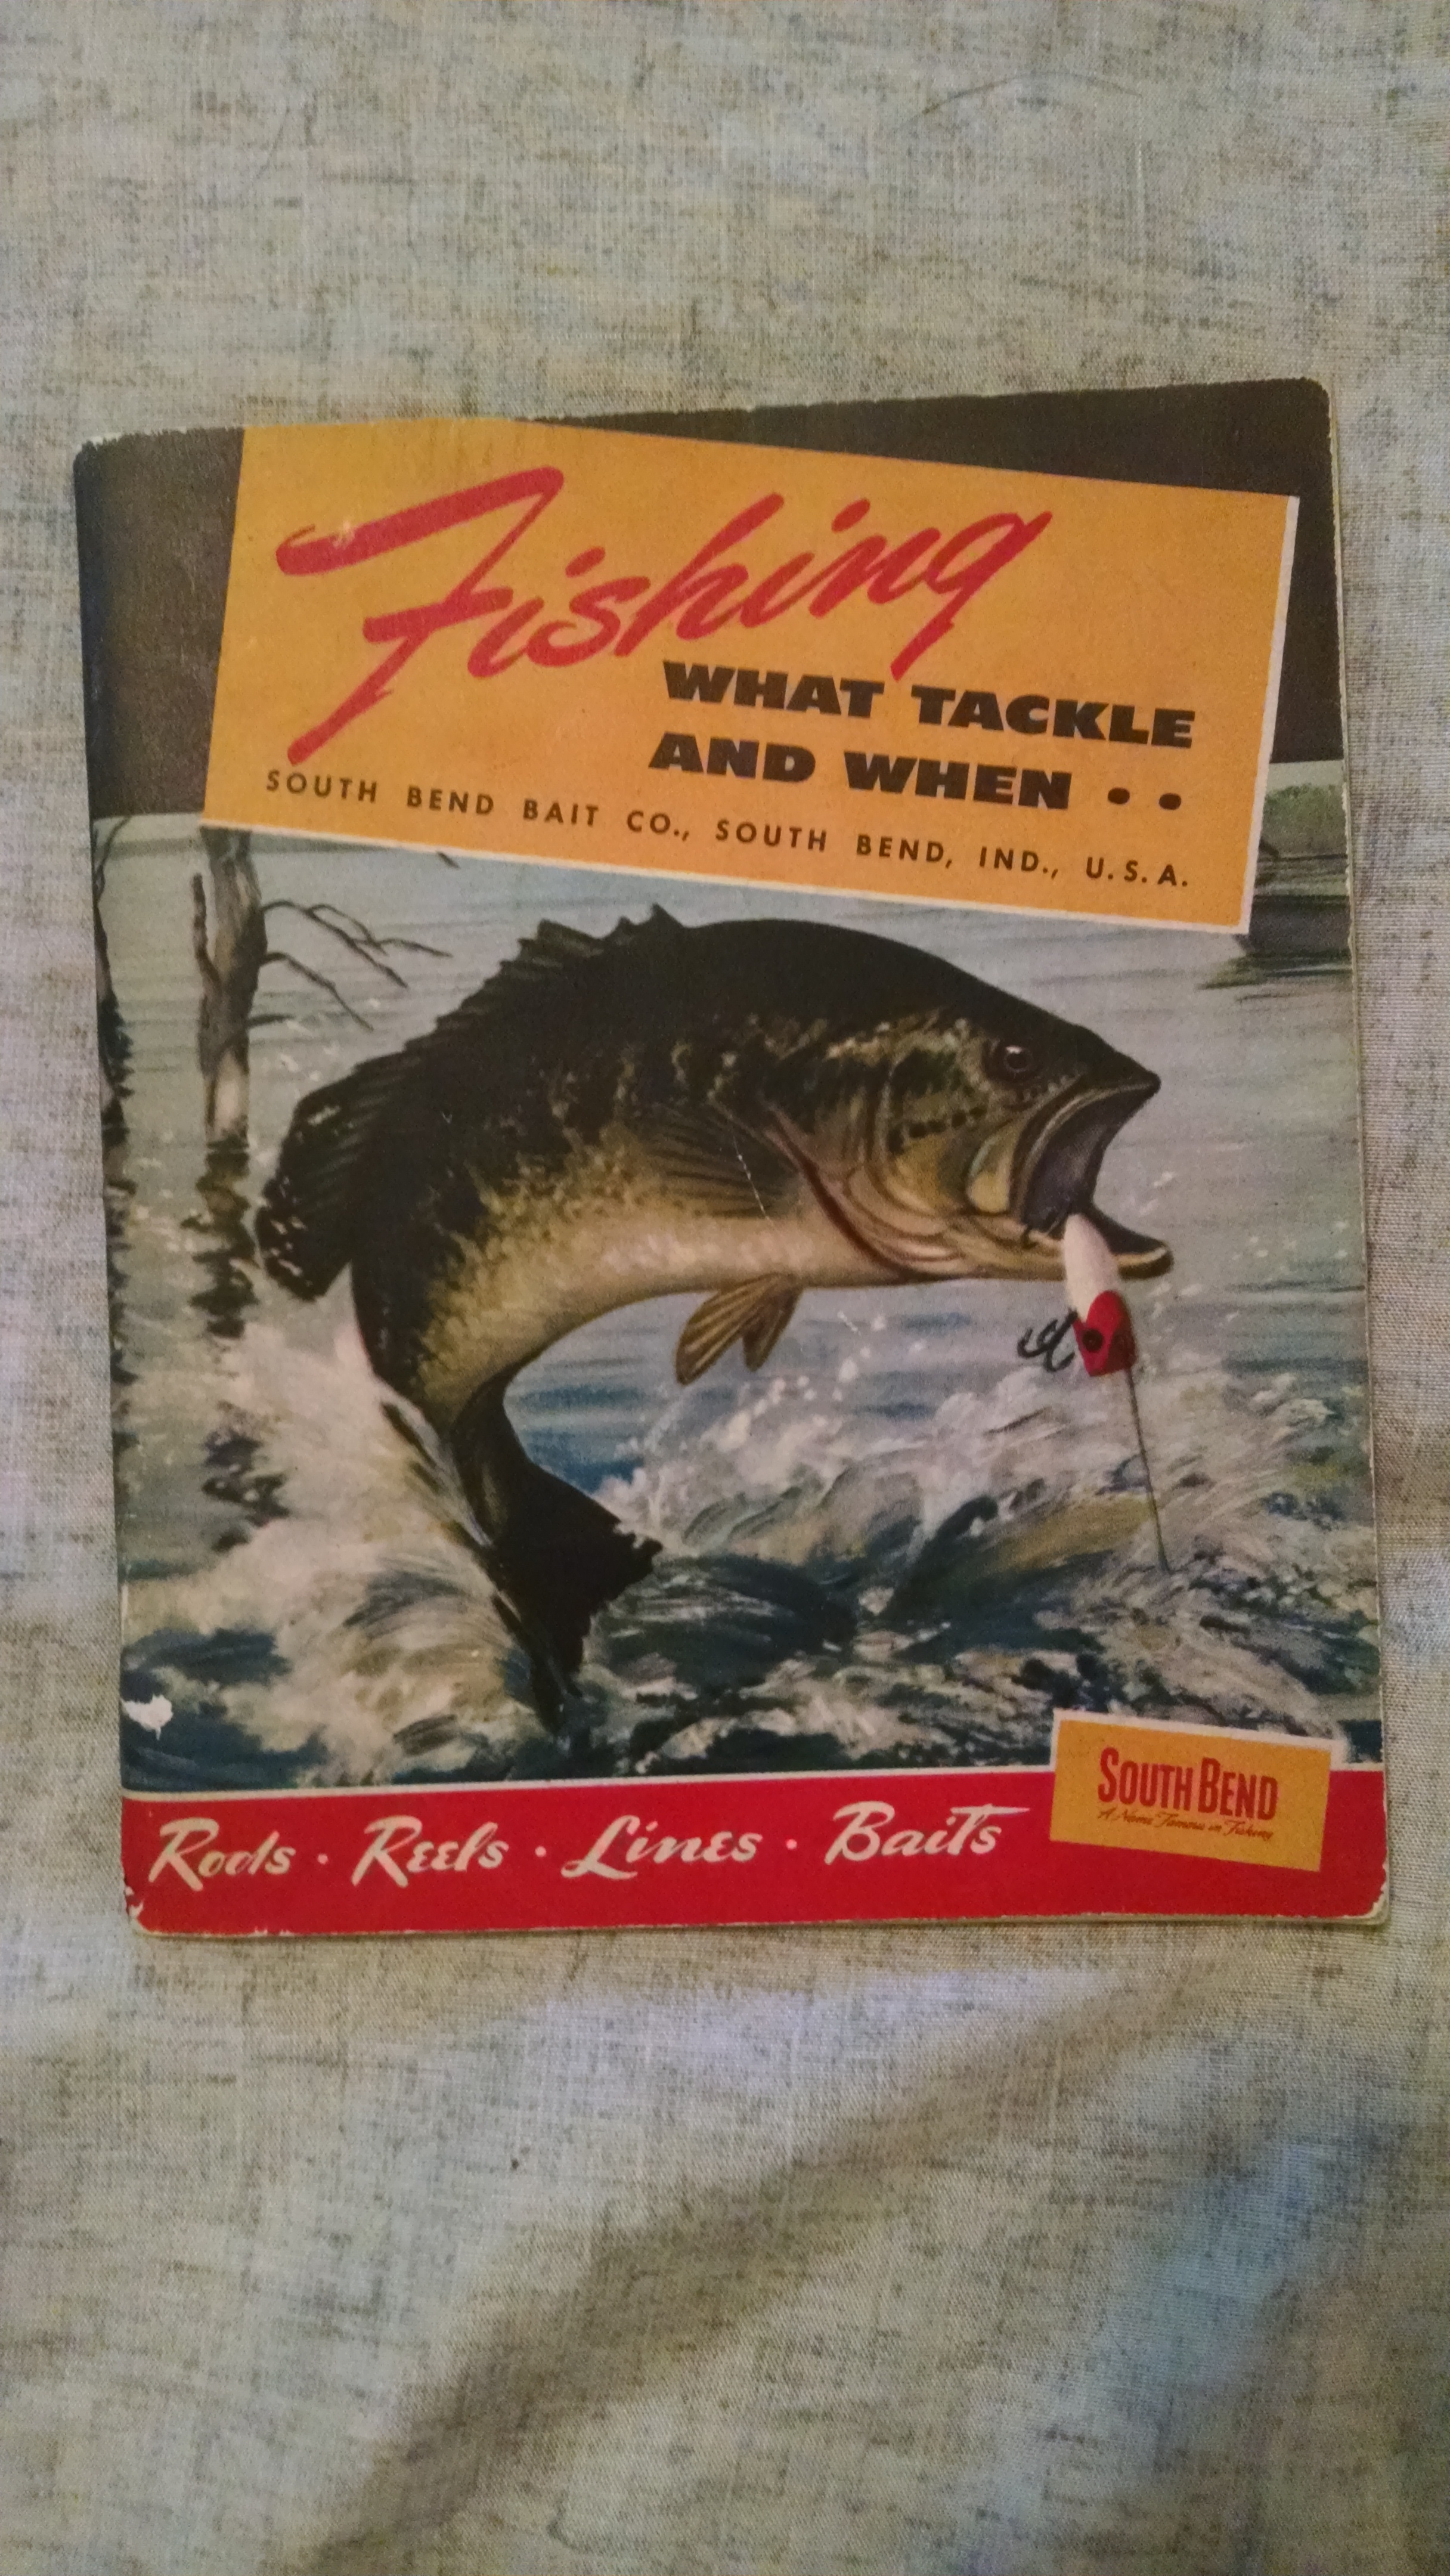 Image for FISHING. WHAT TACKLE AND WHEN